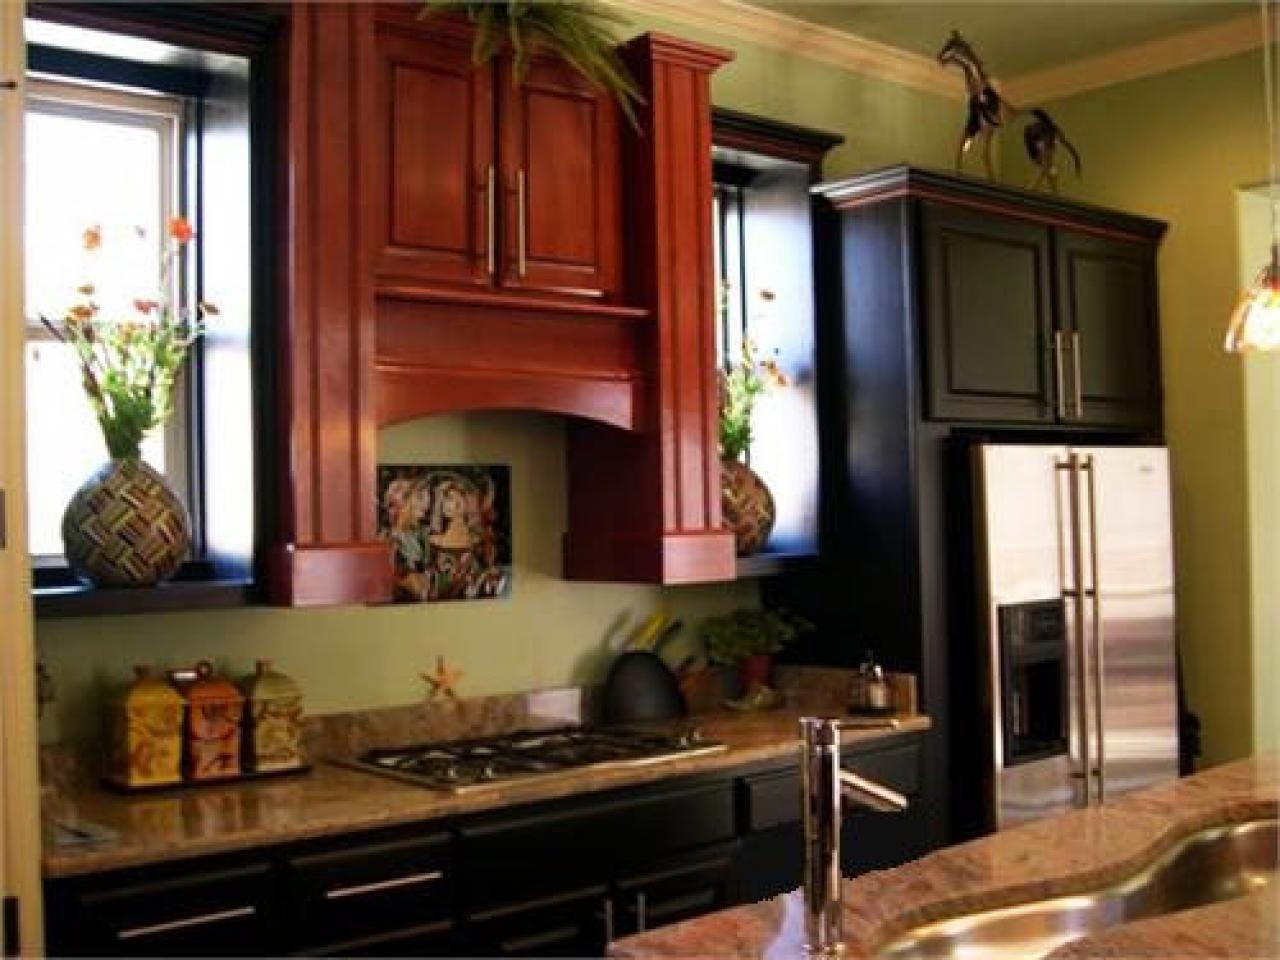 Kitchen Colors Walls Kitchen Colors That Work Together Diy